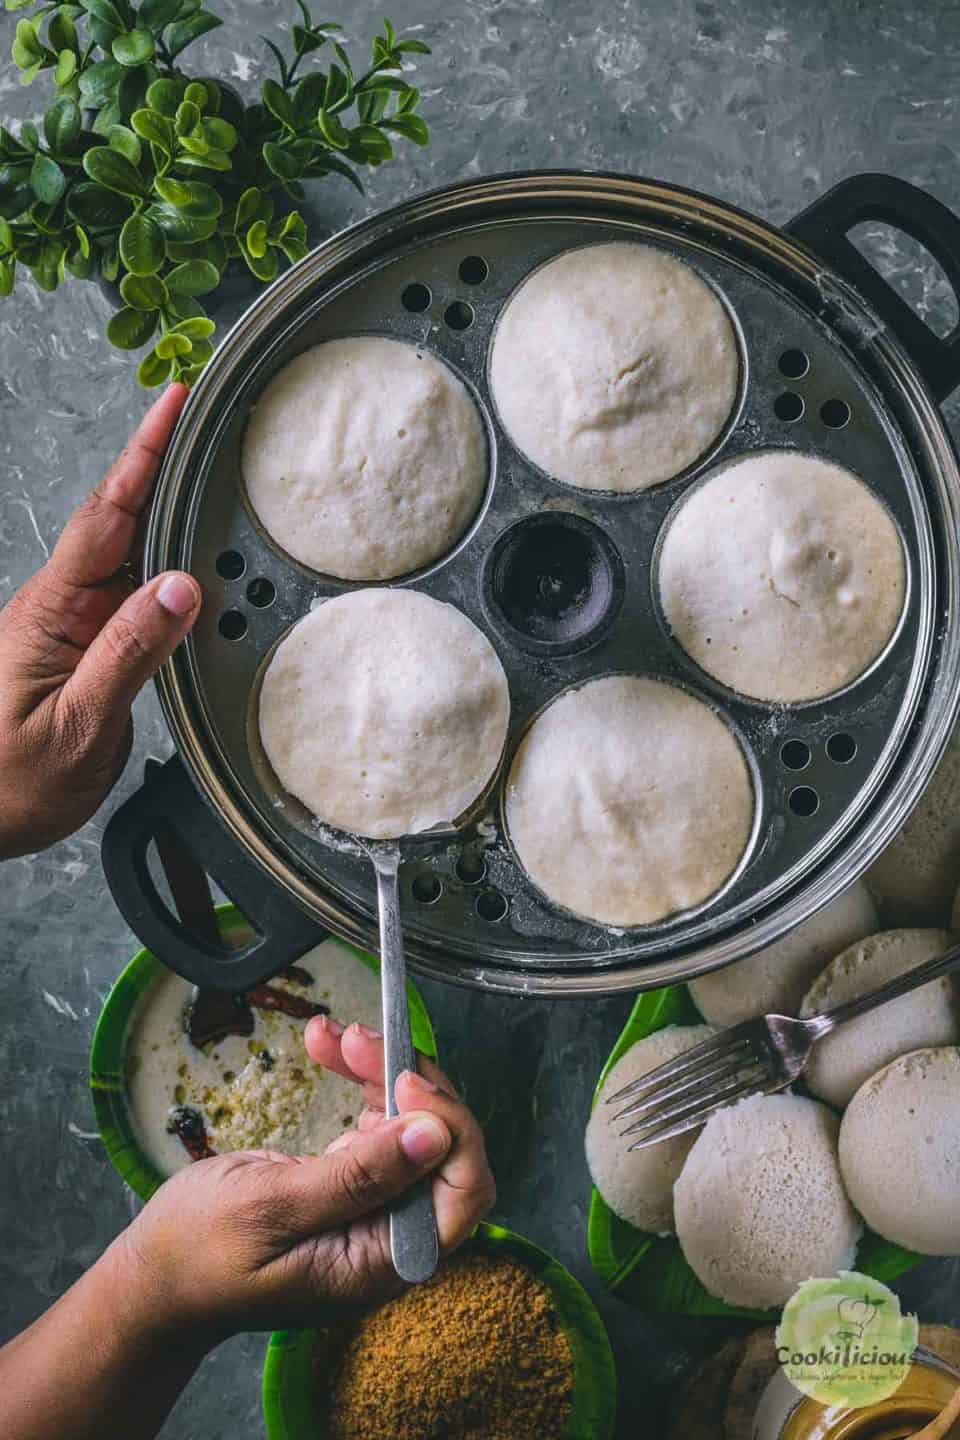 a pair of hands removing idlis from the cooker using a spoon